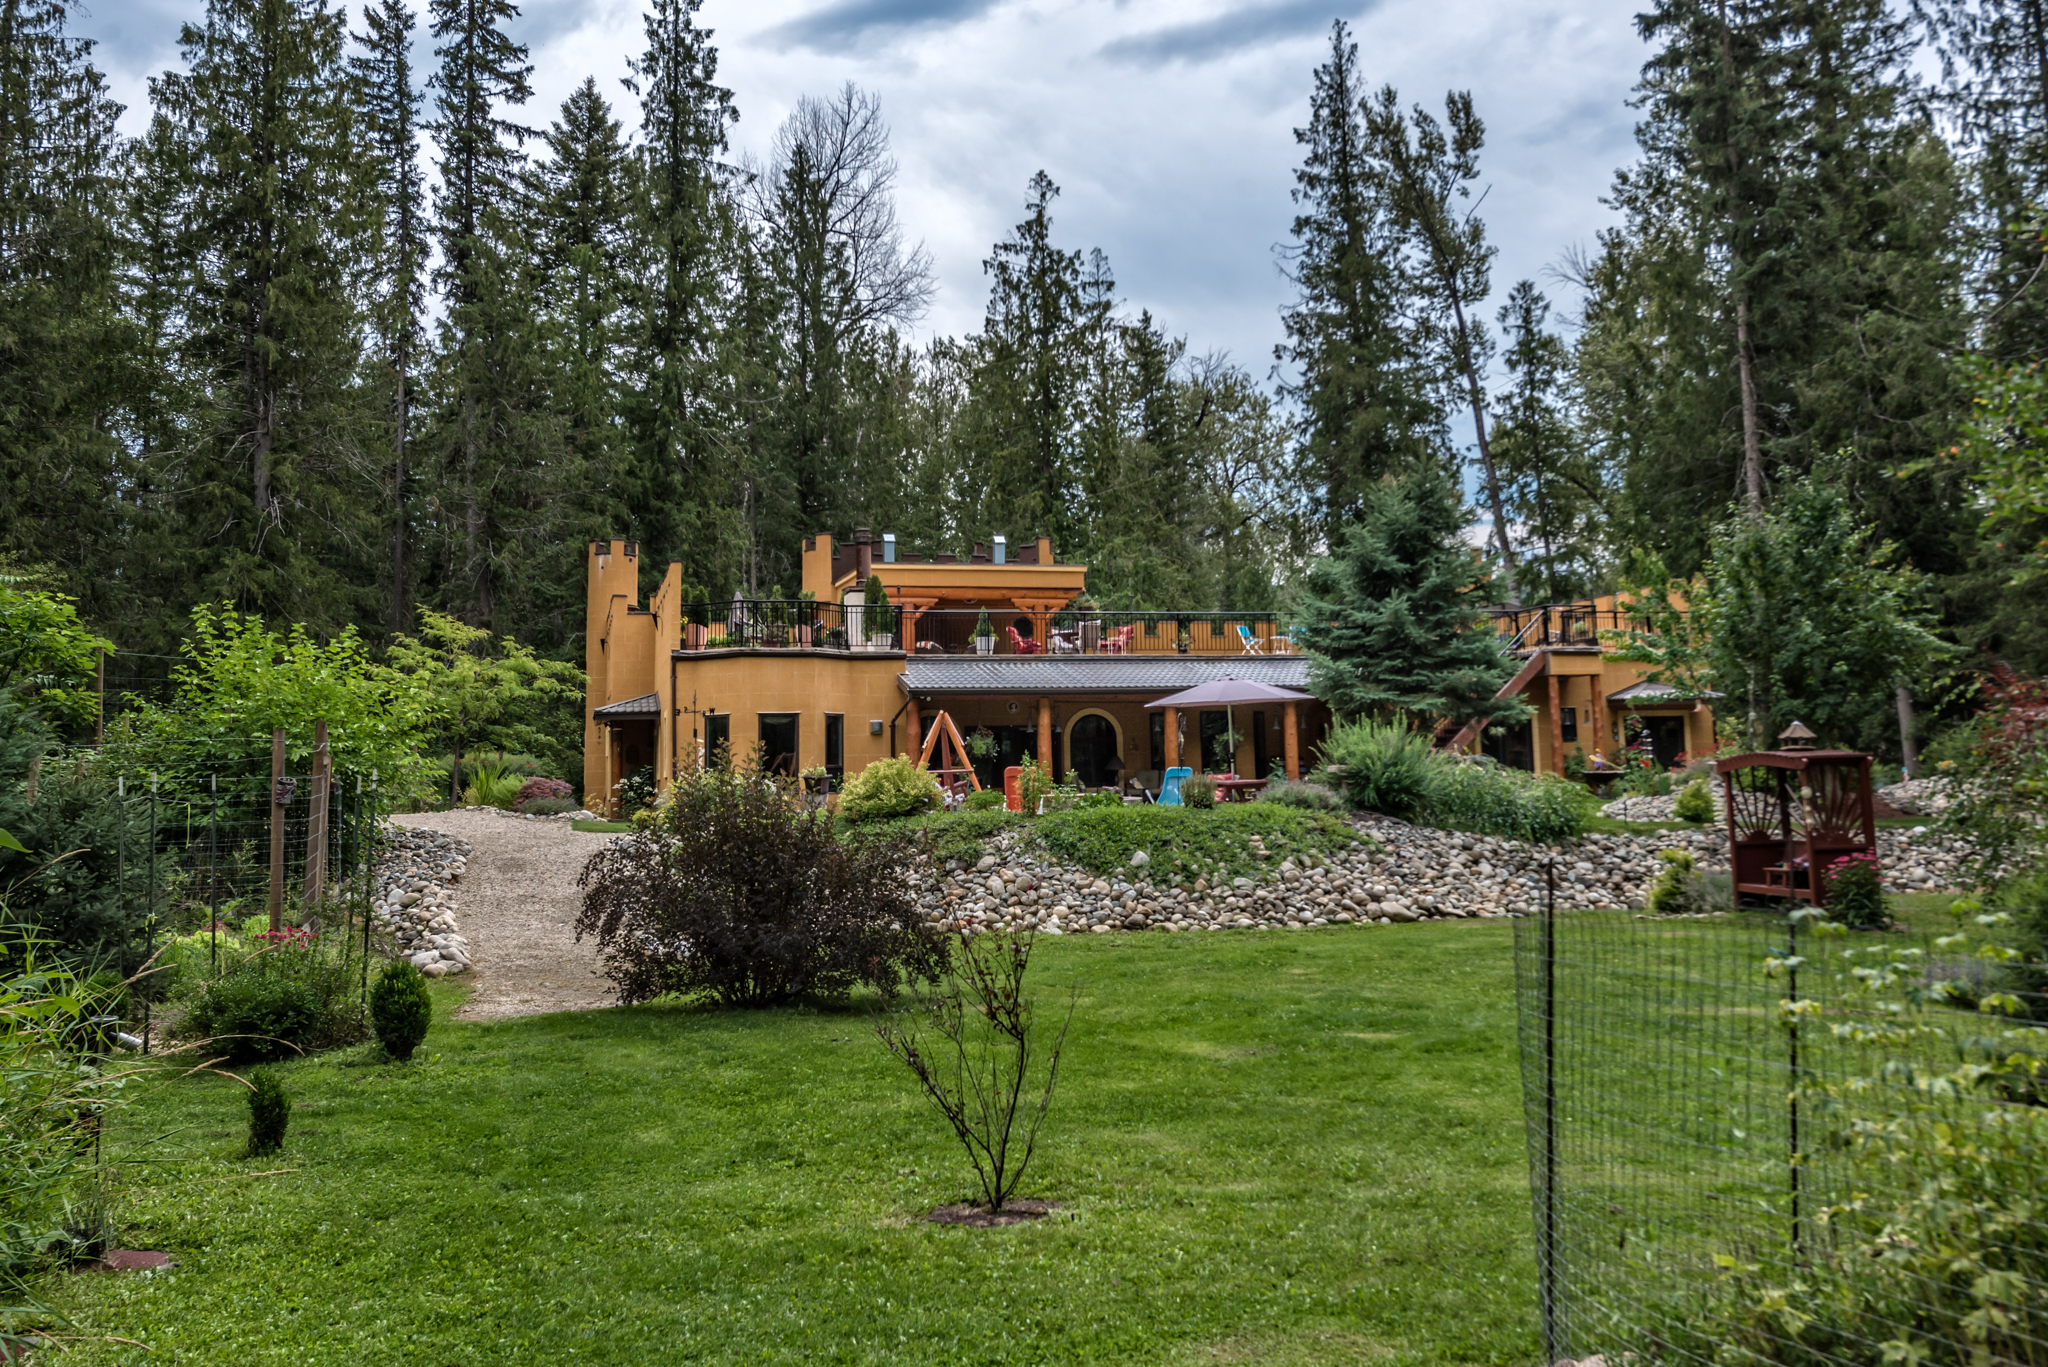 Property for Sale, Canada, British Columbia, Cherryville, Castle 20400